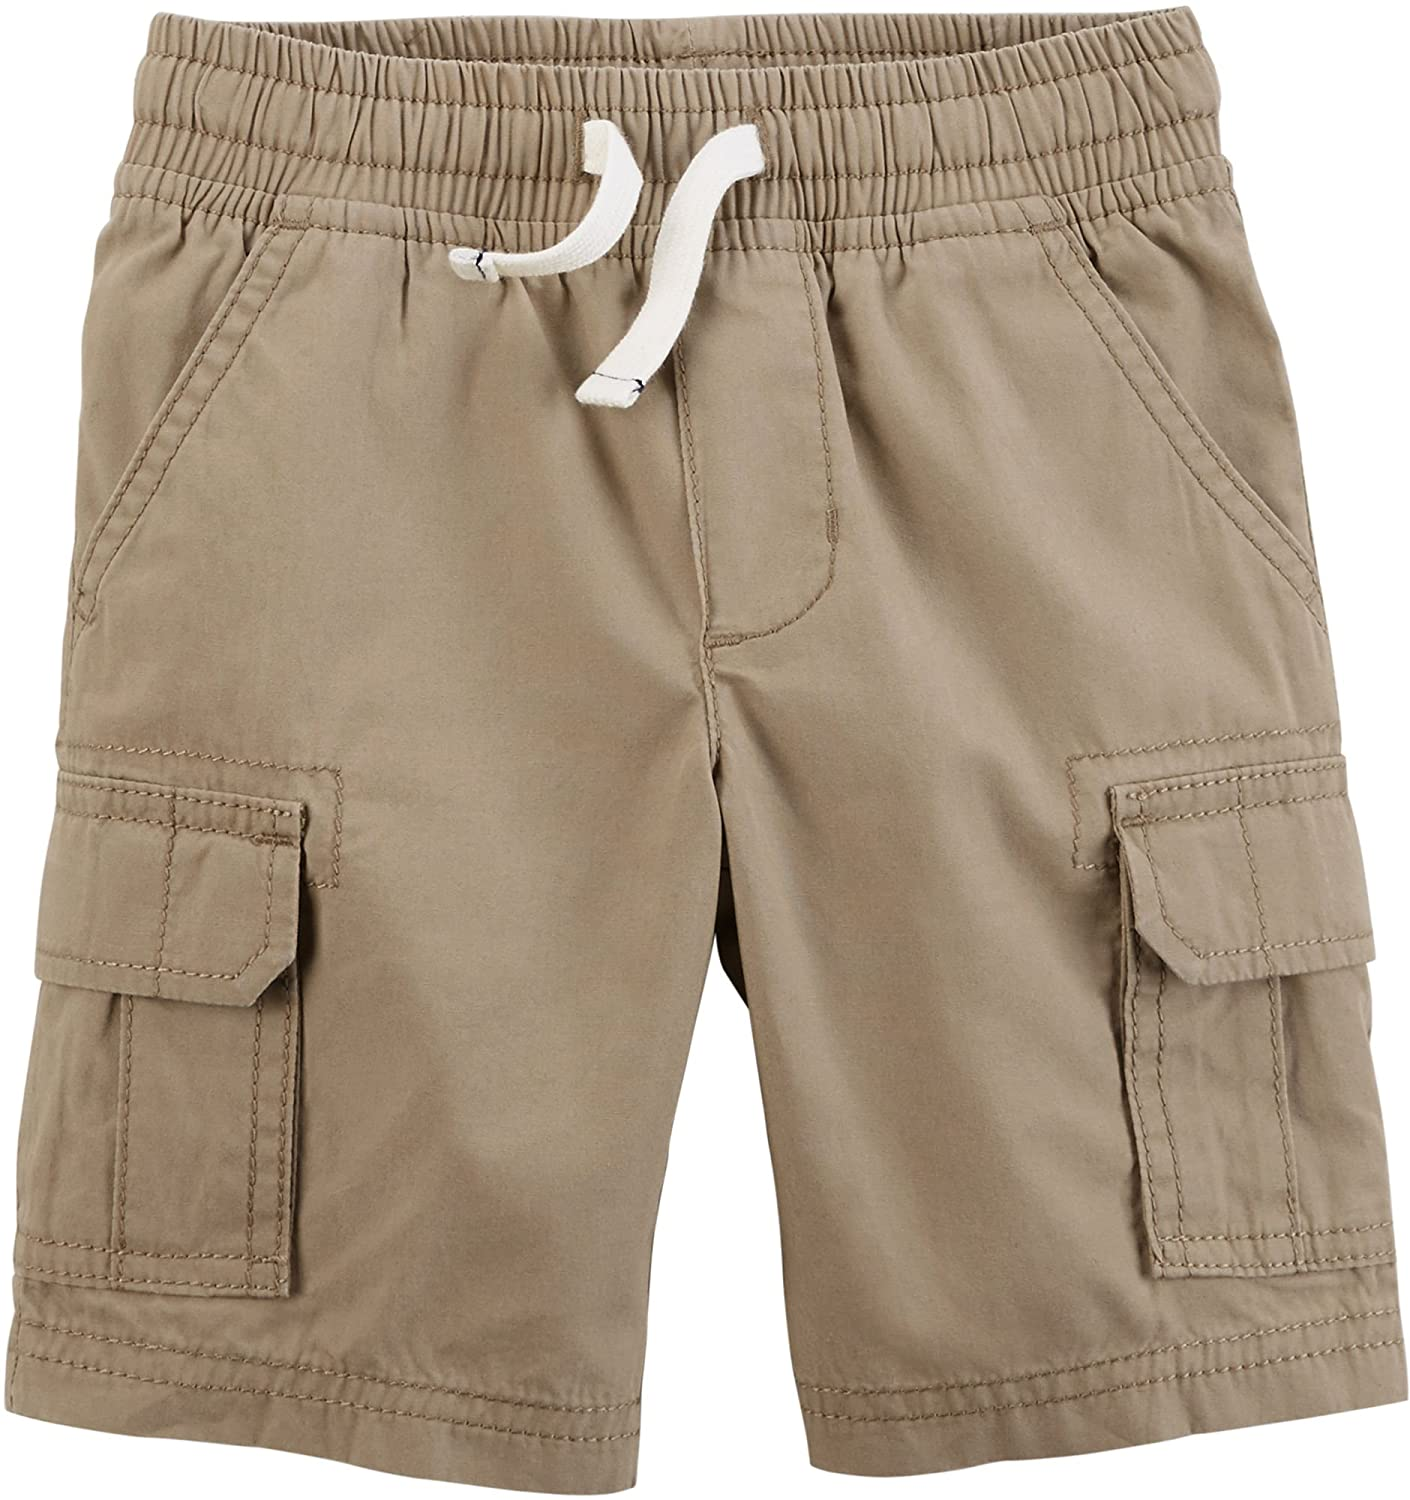 Carter's Boys' 4-8 Pull On Cargo Shorts Carters P000488924